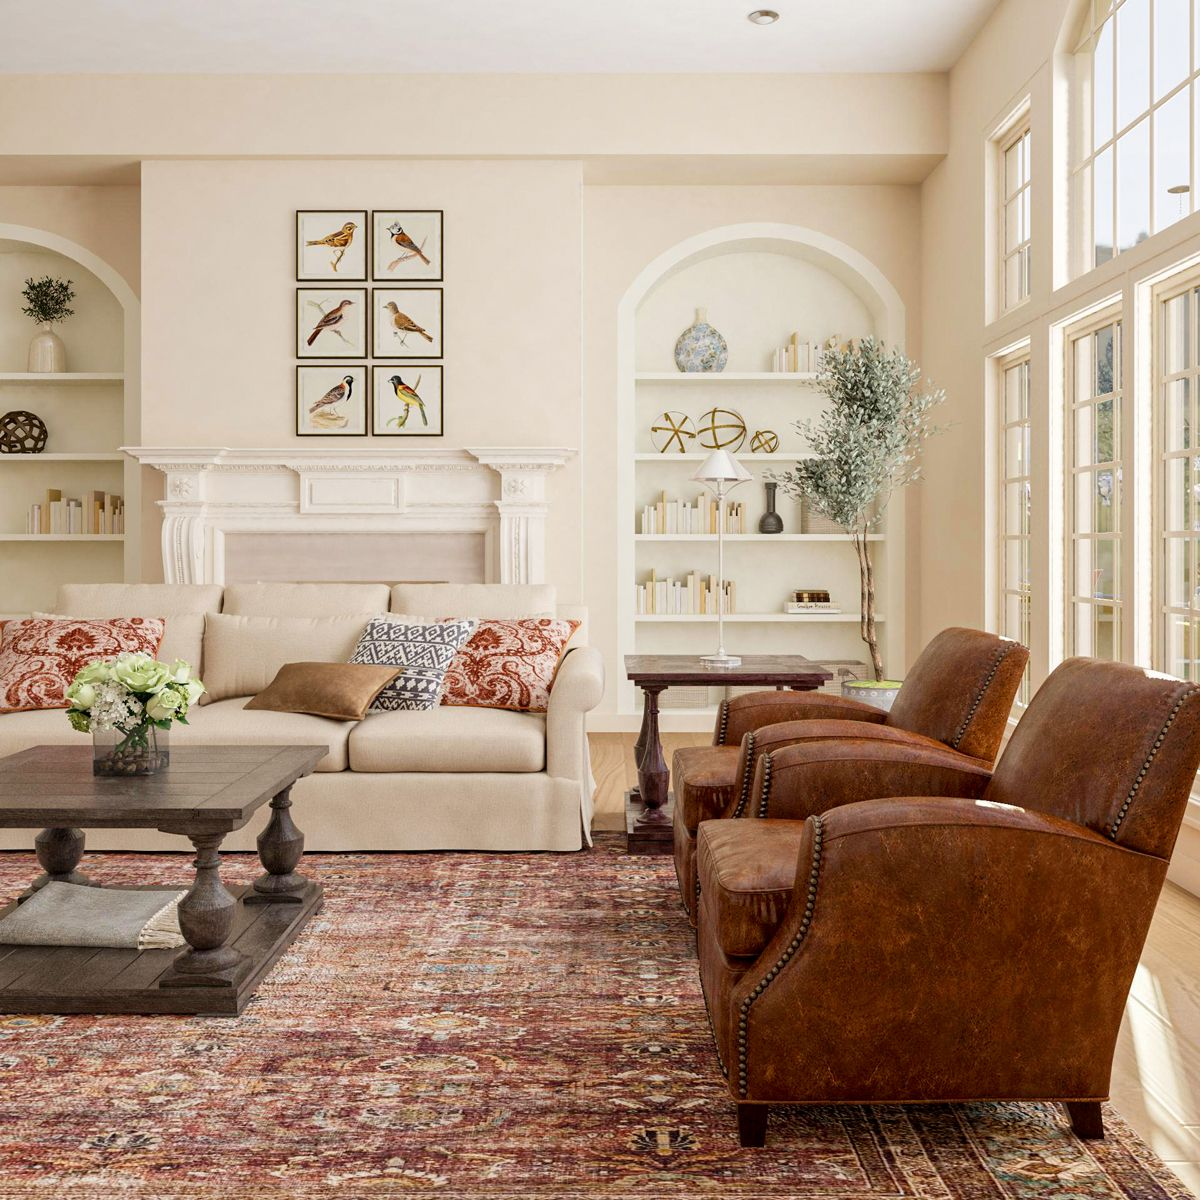 Traditional Comfortable Design Is The New Trend On The Block Modsy Blog In 2021 Traditional Style Living Room Traditional Design Living Room Traditional Living Room